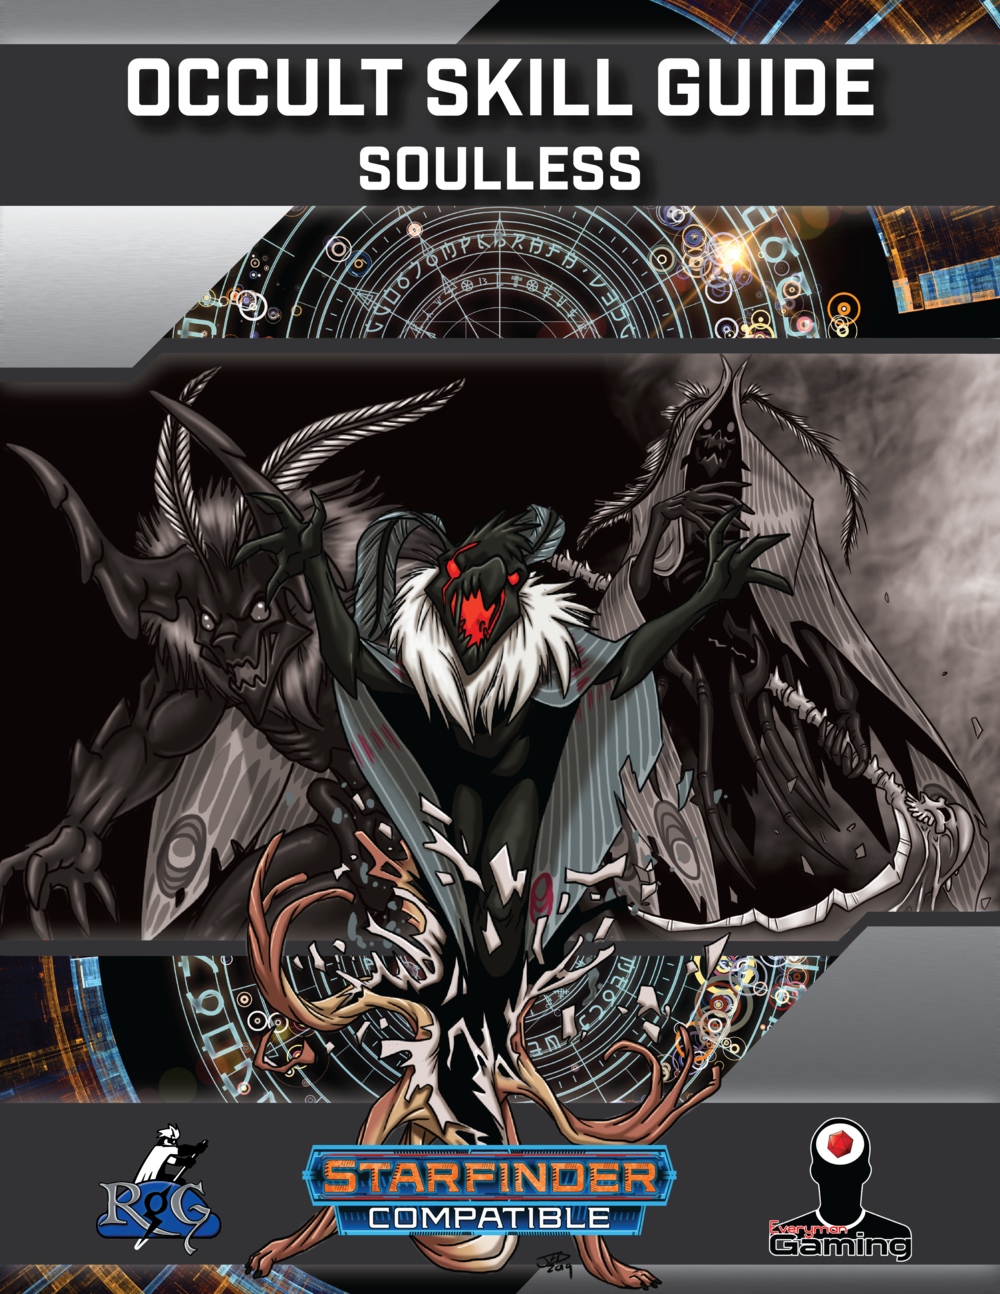 Occult Skill Guide: Soulless